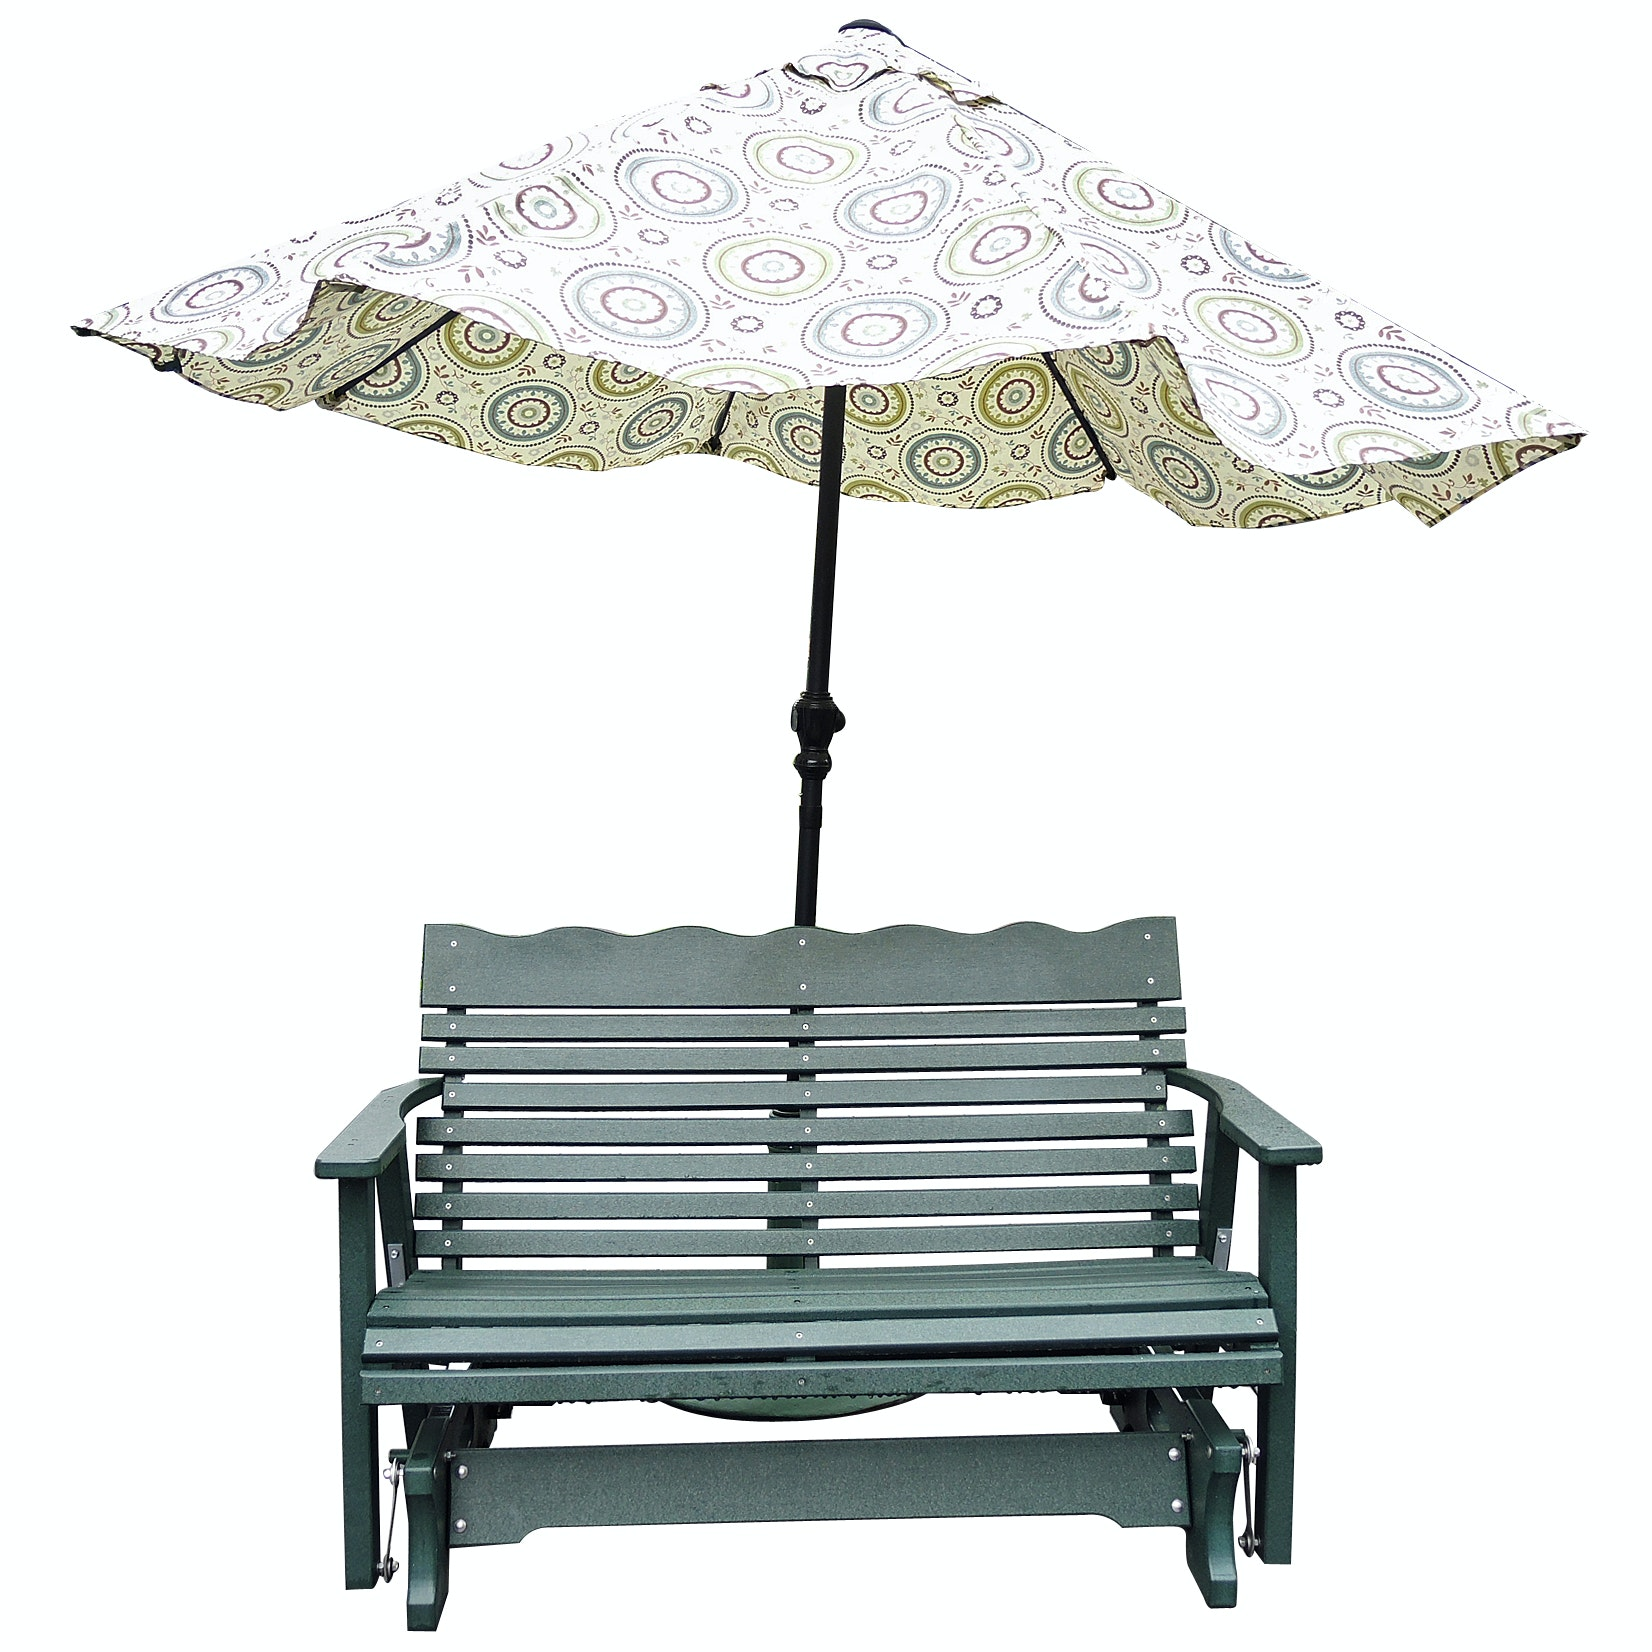 Dutch Crafters Poly Lumber Glider Bench with Umbrella